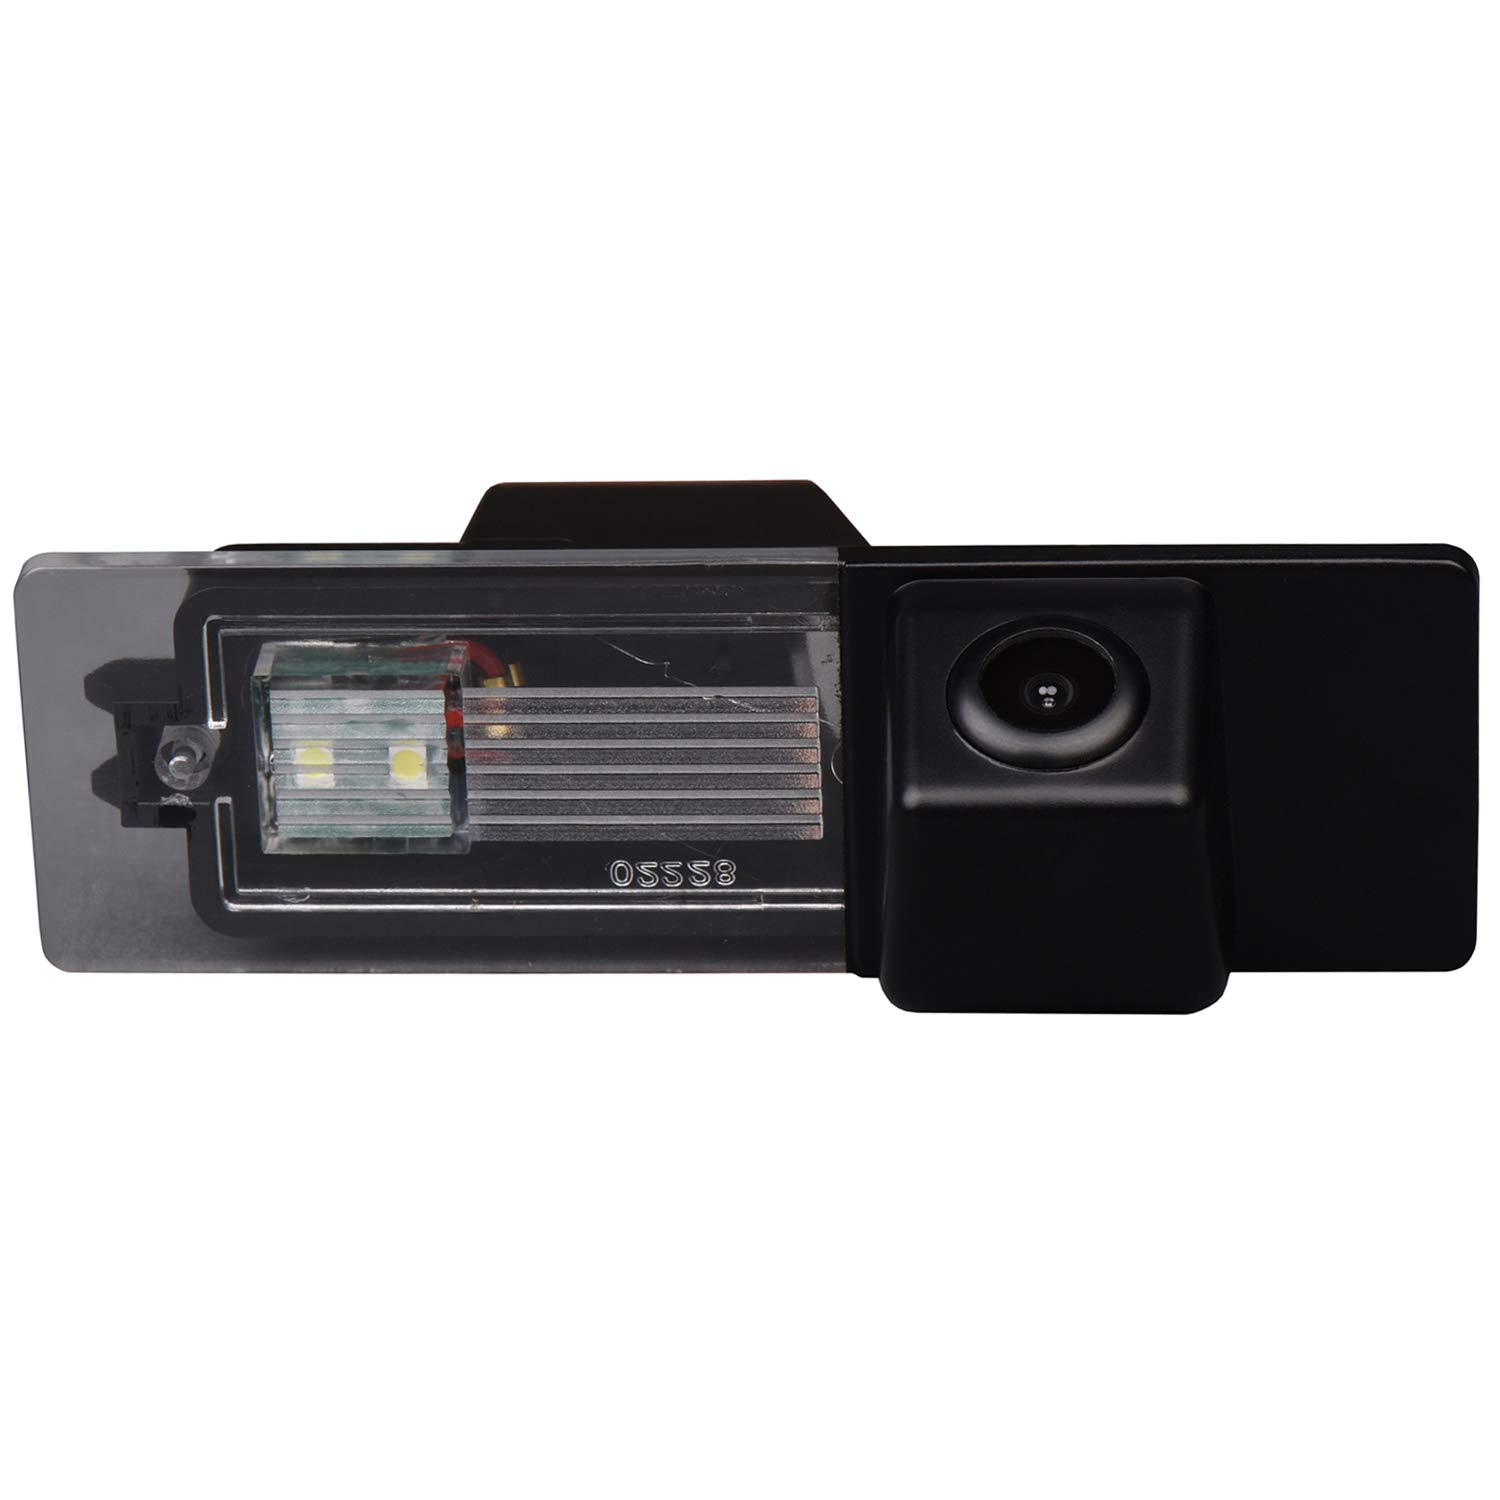 Misayaee Reversing Vehicle-Specific Camera Integrated in Number Plate Light License Rear View Backup camera for BMW 1 Series M1 E81 E87 F20 F21 116i 118i 120i 135i 640i Mini Cooper R55 R57 R60 R61